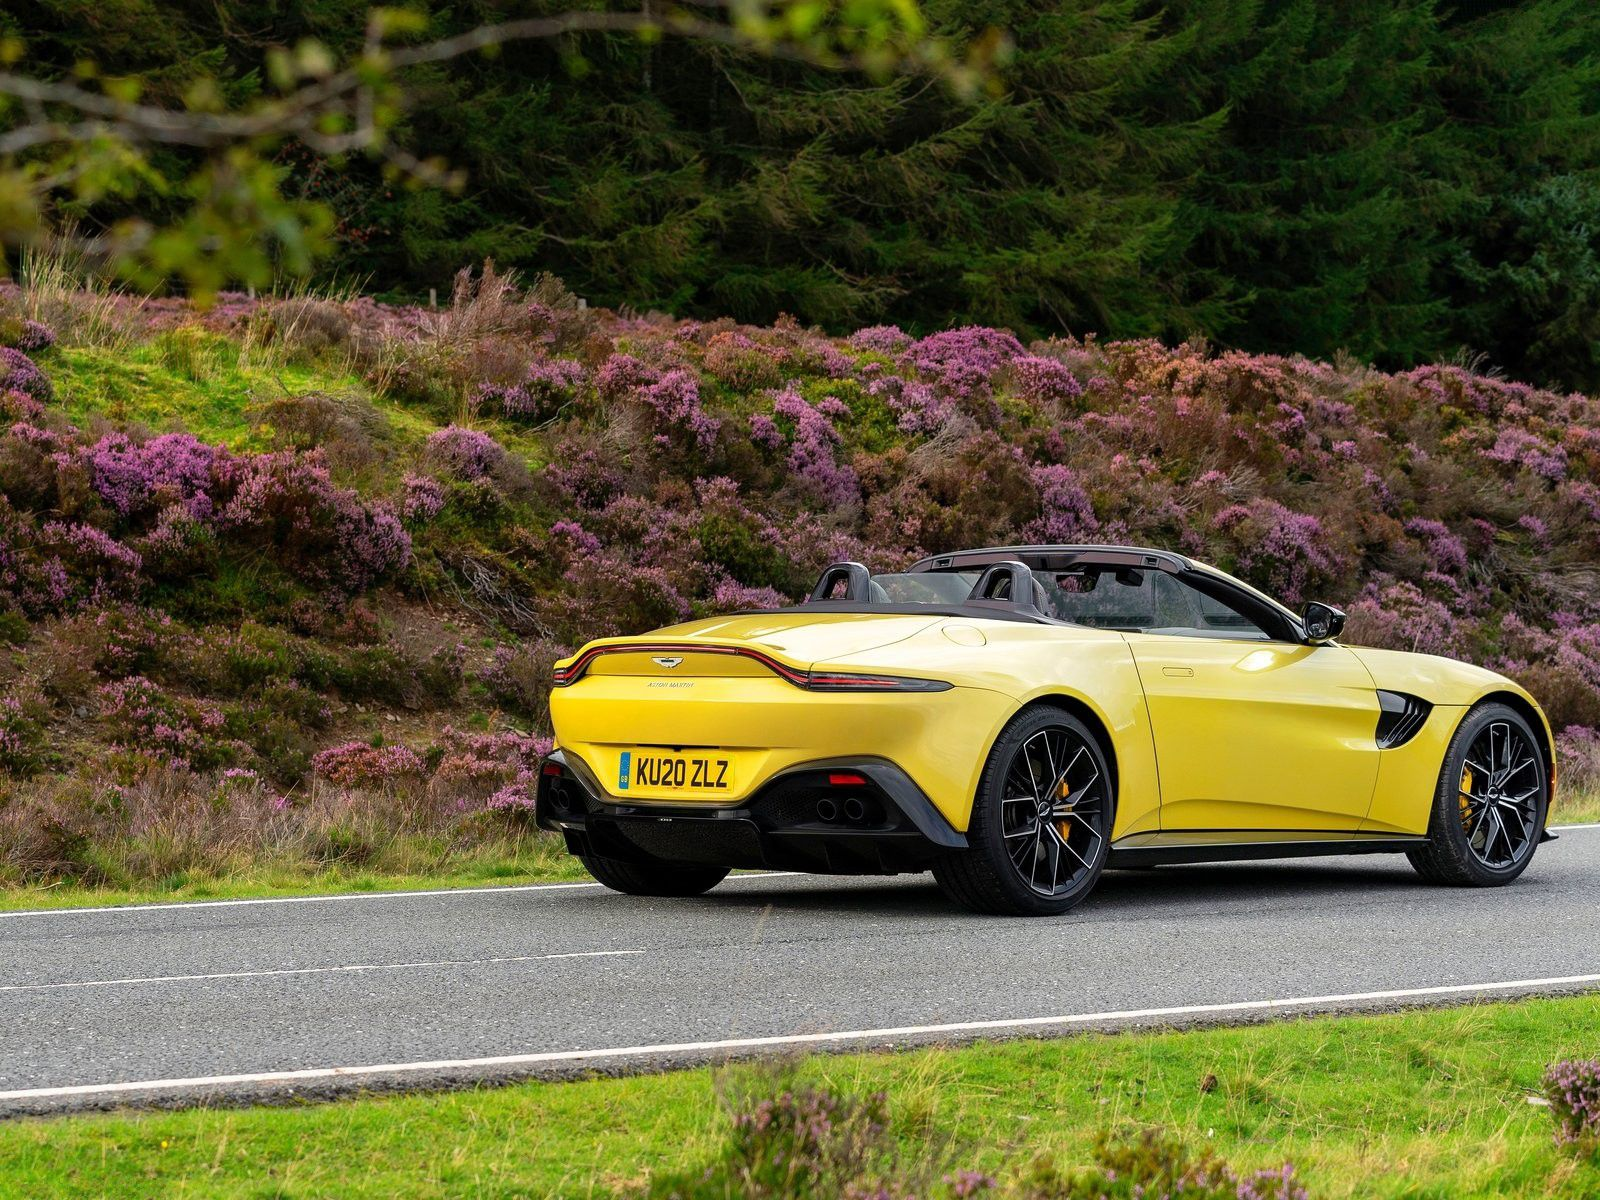 VOITURES DE LEGENDE (1217) : ASTON MARTIN  VANTAGE ROADSTER - 2020